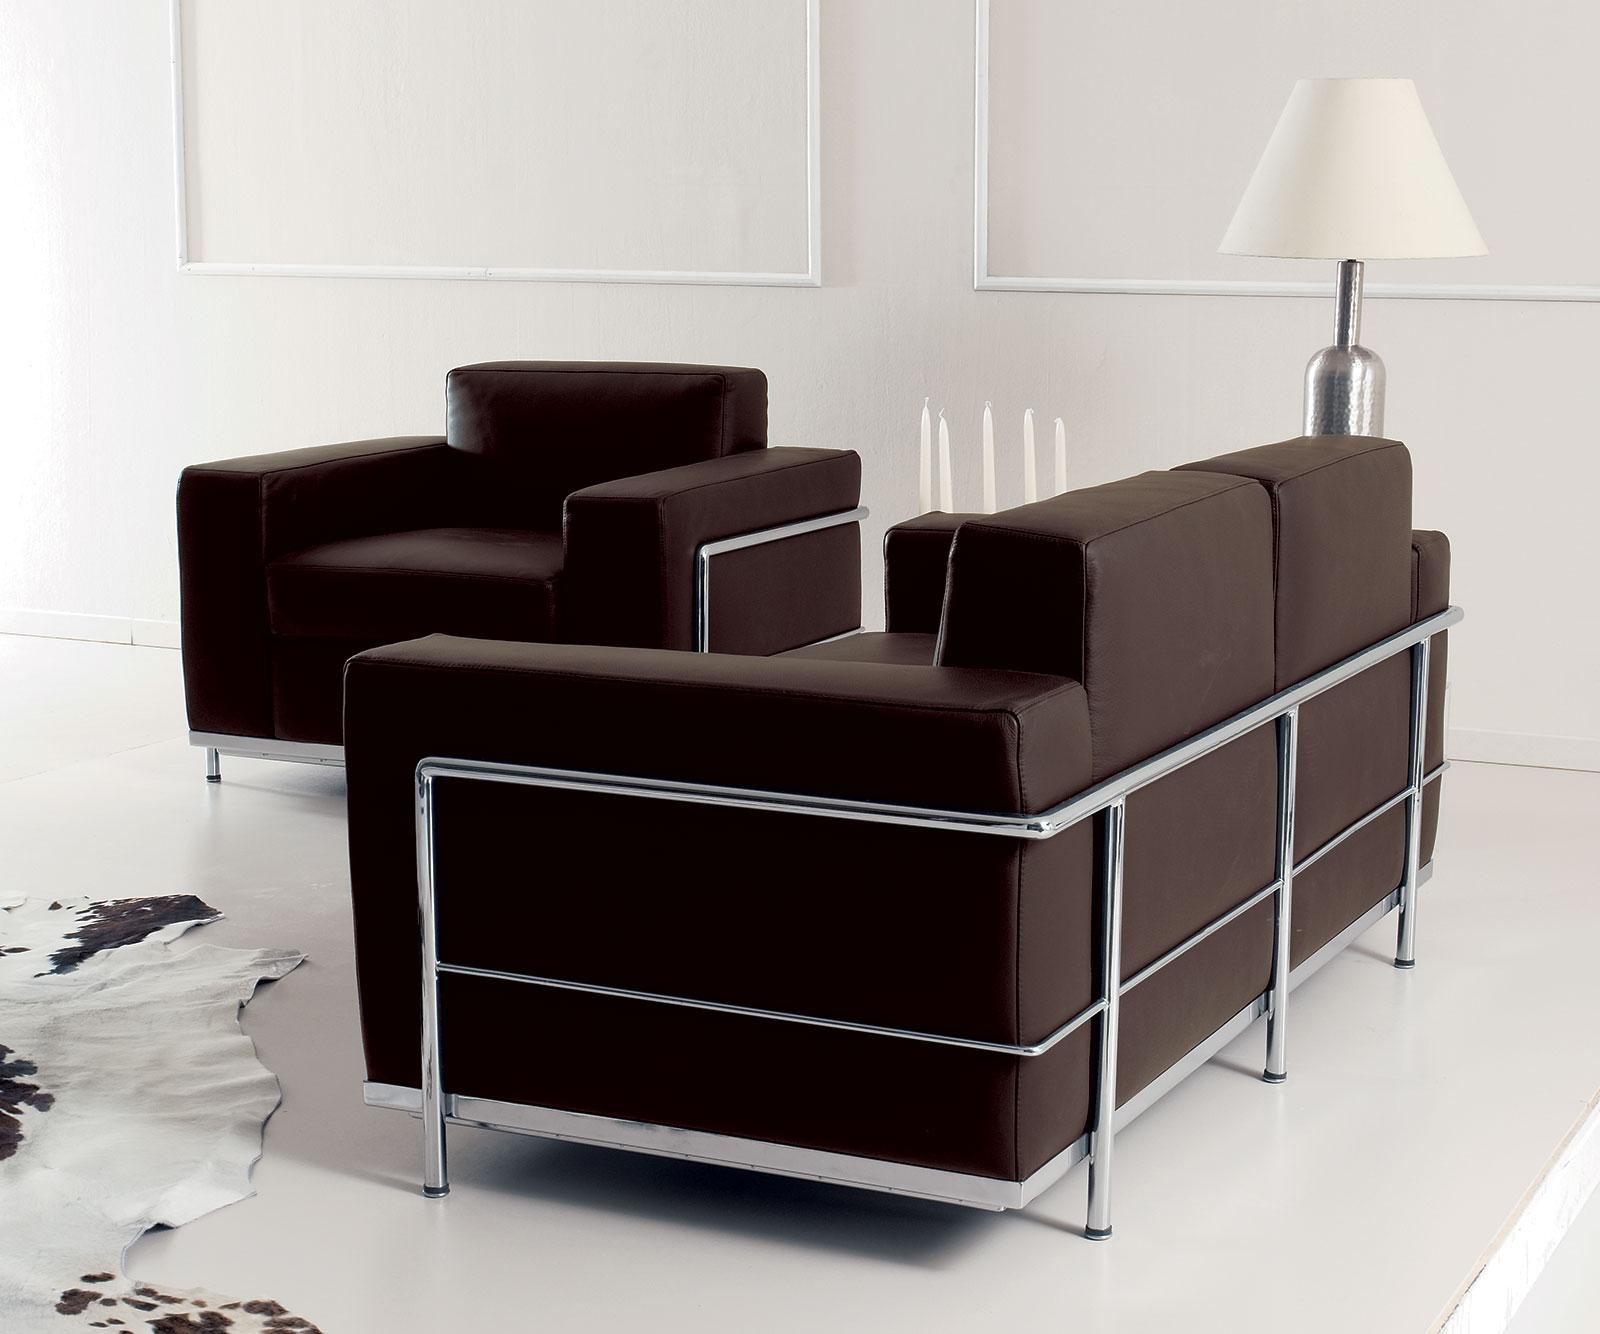 Sofa 2 seater leather couch chairs delivery italia online furniture stores shops design delivery sale home